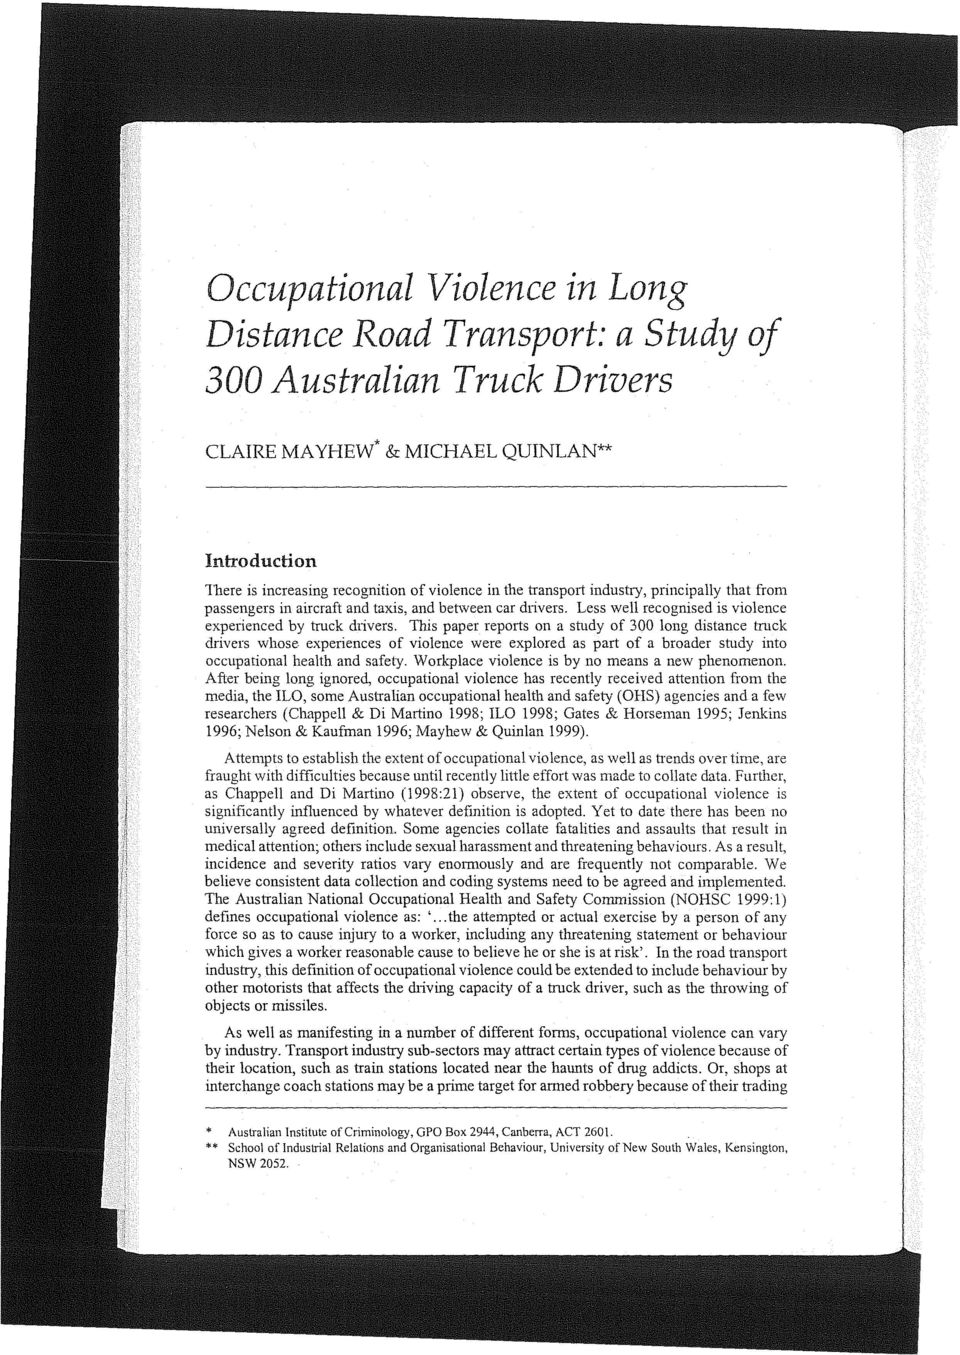 This paper reports on a shtdy 300 long distance truck drivers whose experiences violence were explored as part a broader srudy into occupational health and safety.